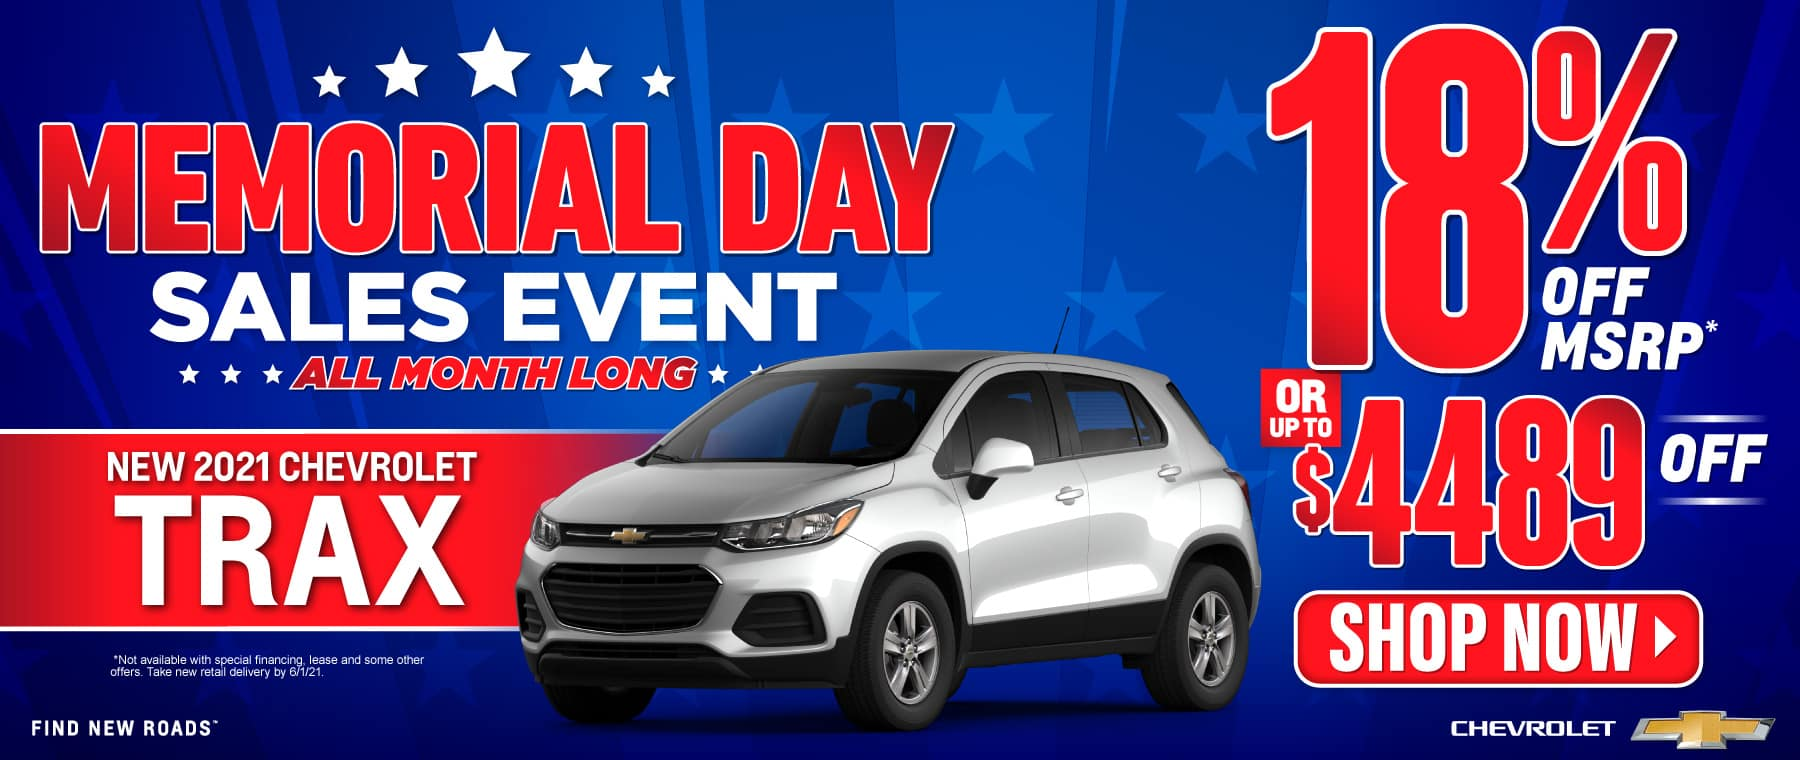 New 2021 Chevy Trax - 18% off msrp - Act Now